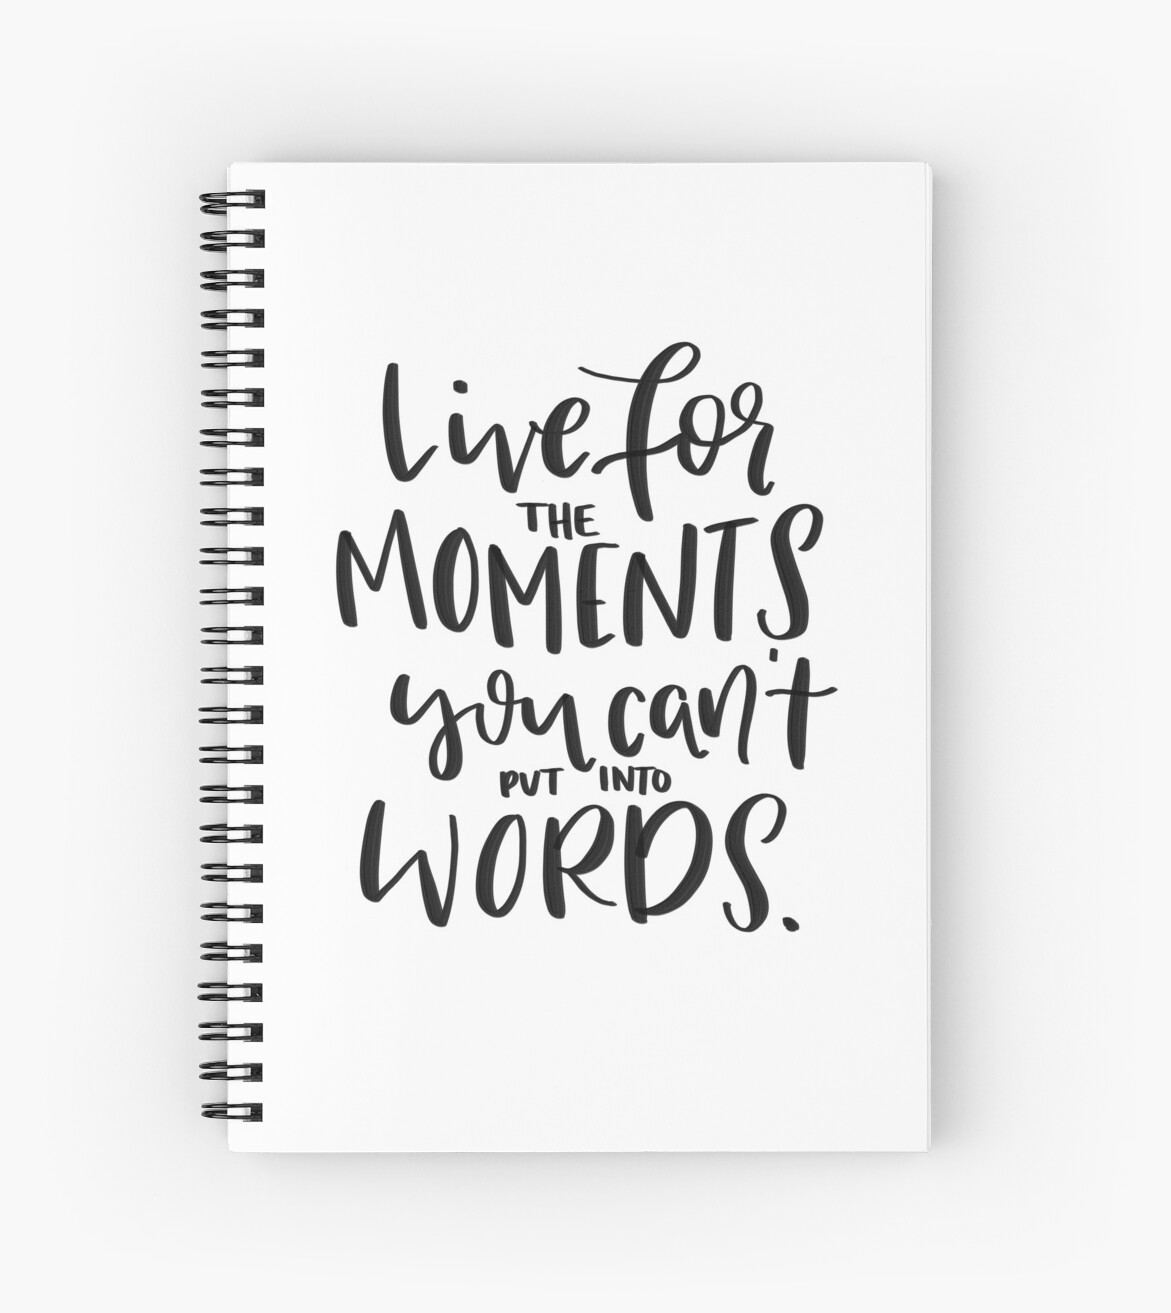 Image result for live for the moments you can't put into words